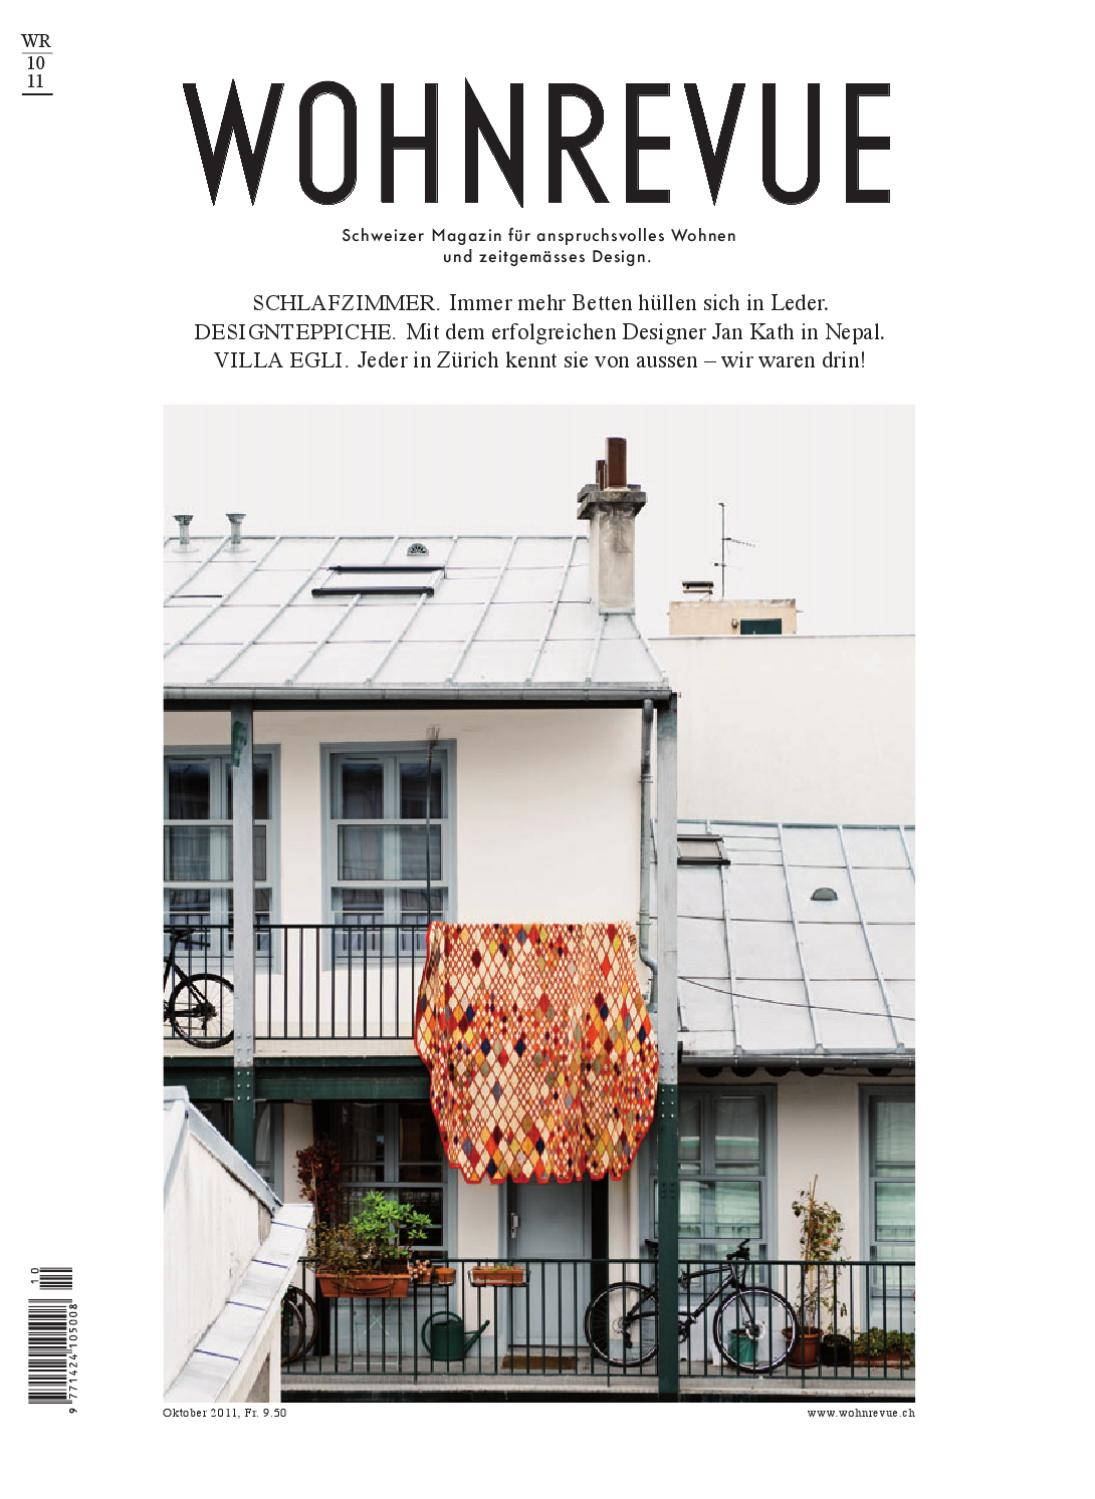 wohnrevue 10 2011 by boll verlag issuu. Black Bedroom Furniture Sets. Home Design Ideas